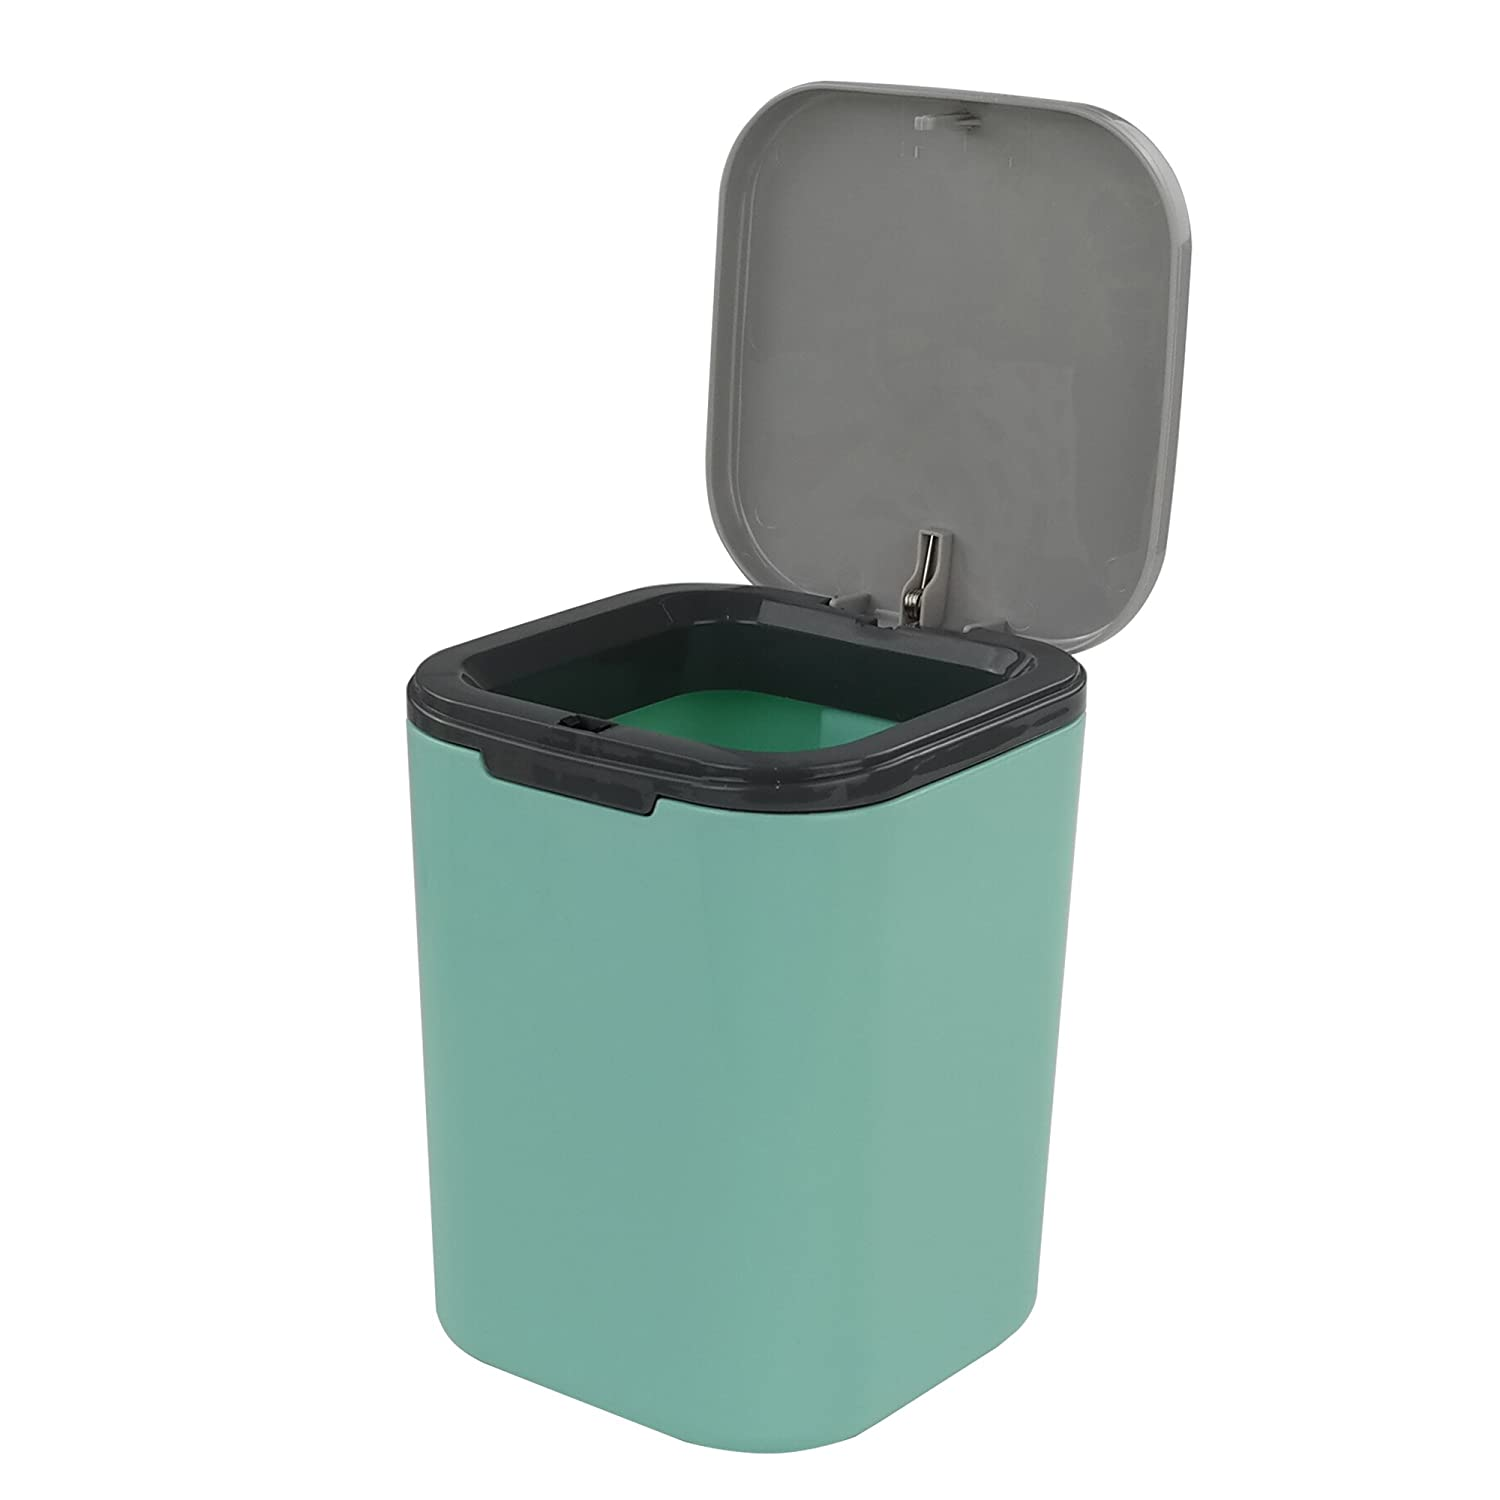 HOMMP Recycled Tiny Desktop Trash Can, Car Waste Can, 0.5 Gallon (blue)